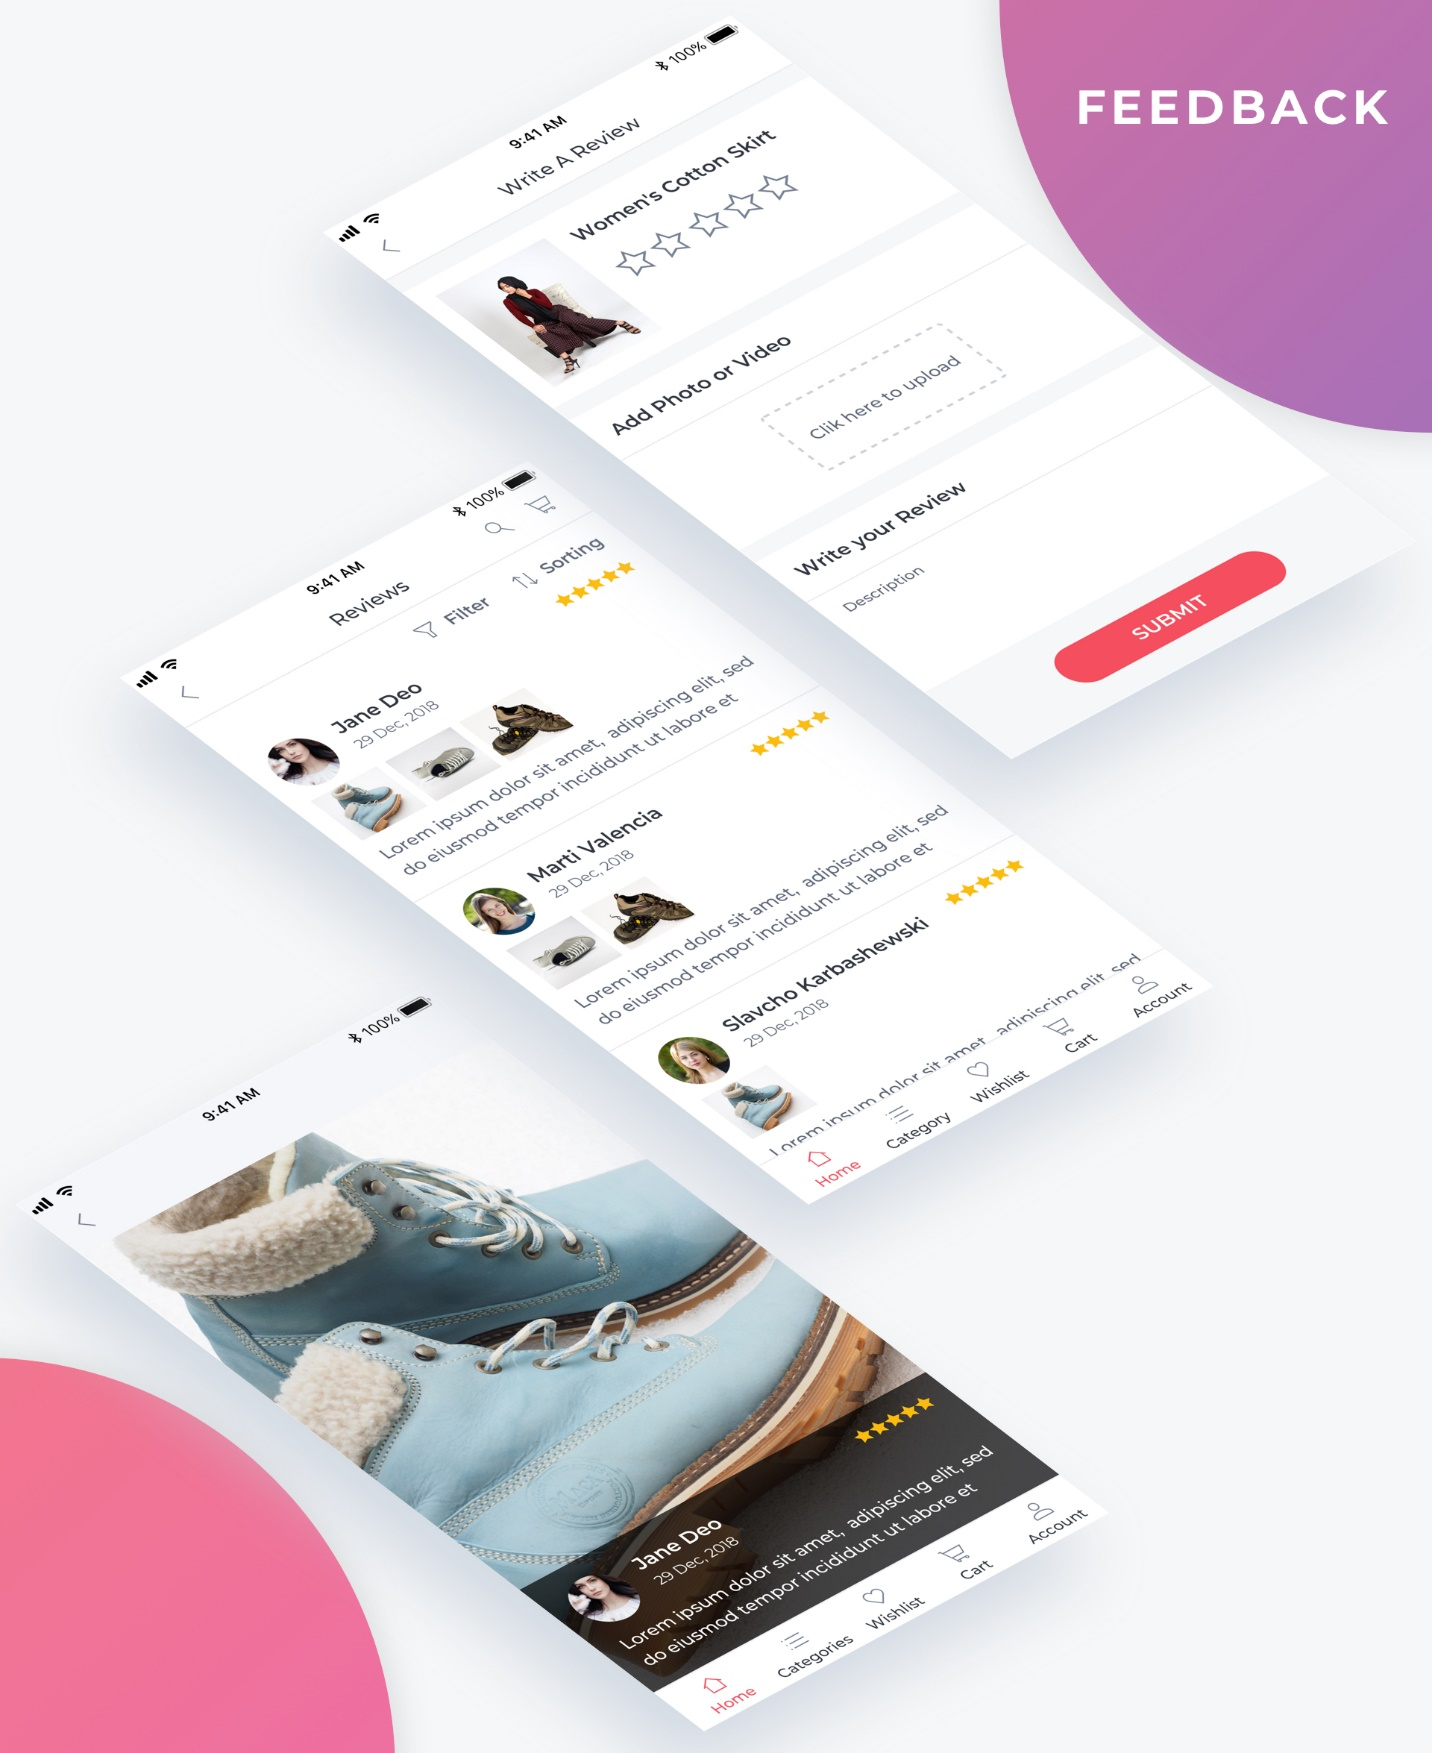 Essential UI Kit - Feedback Page